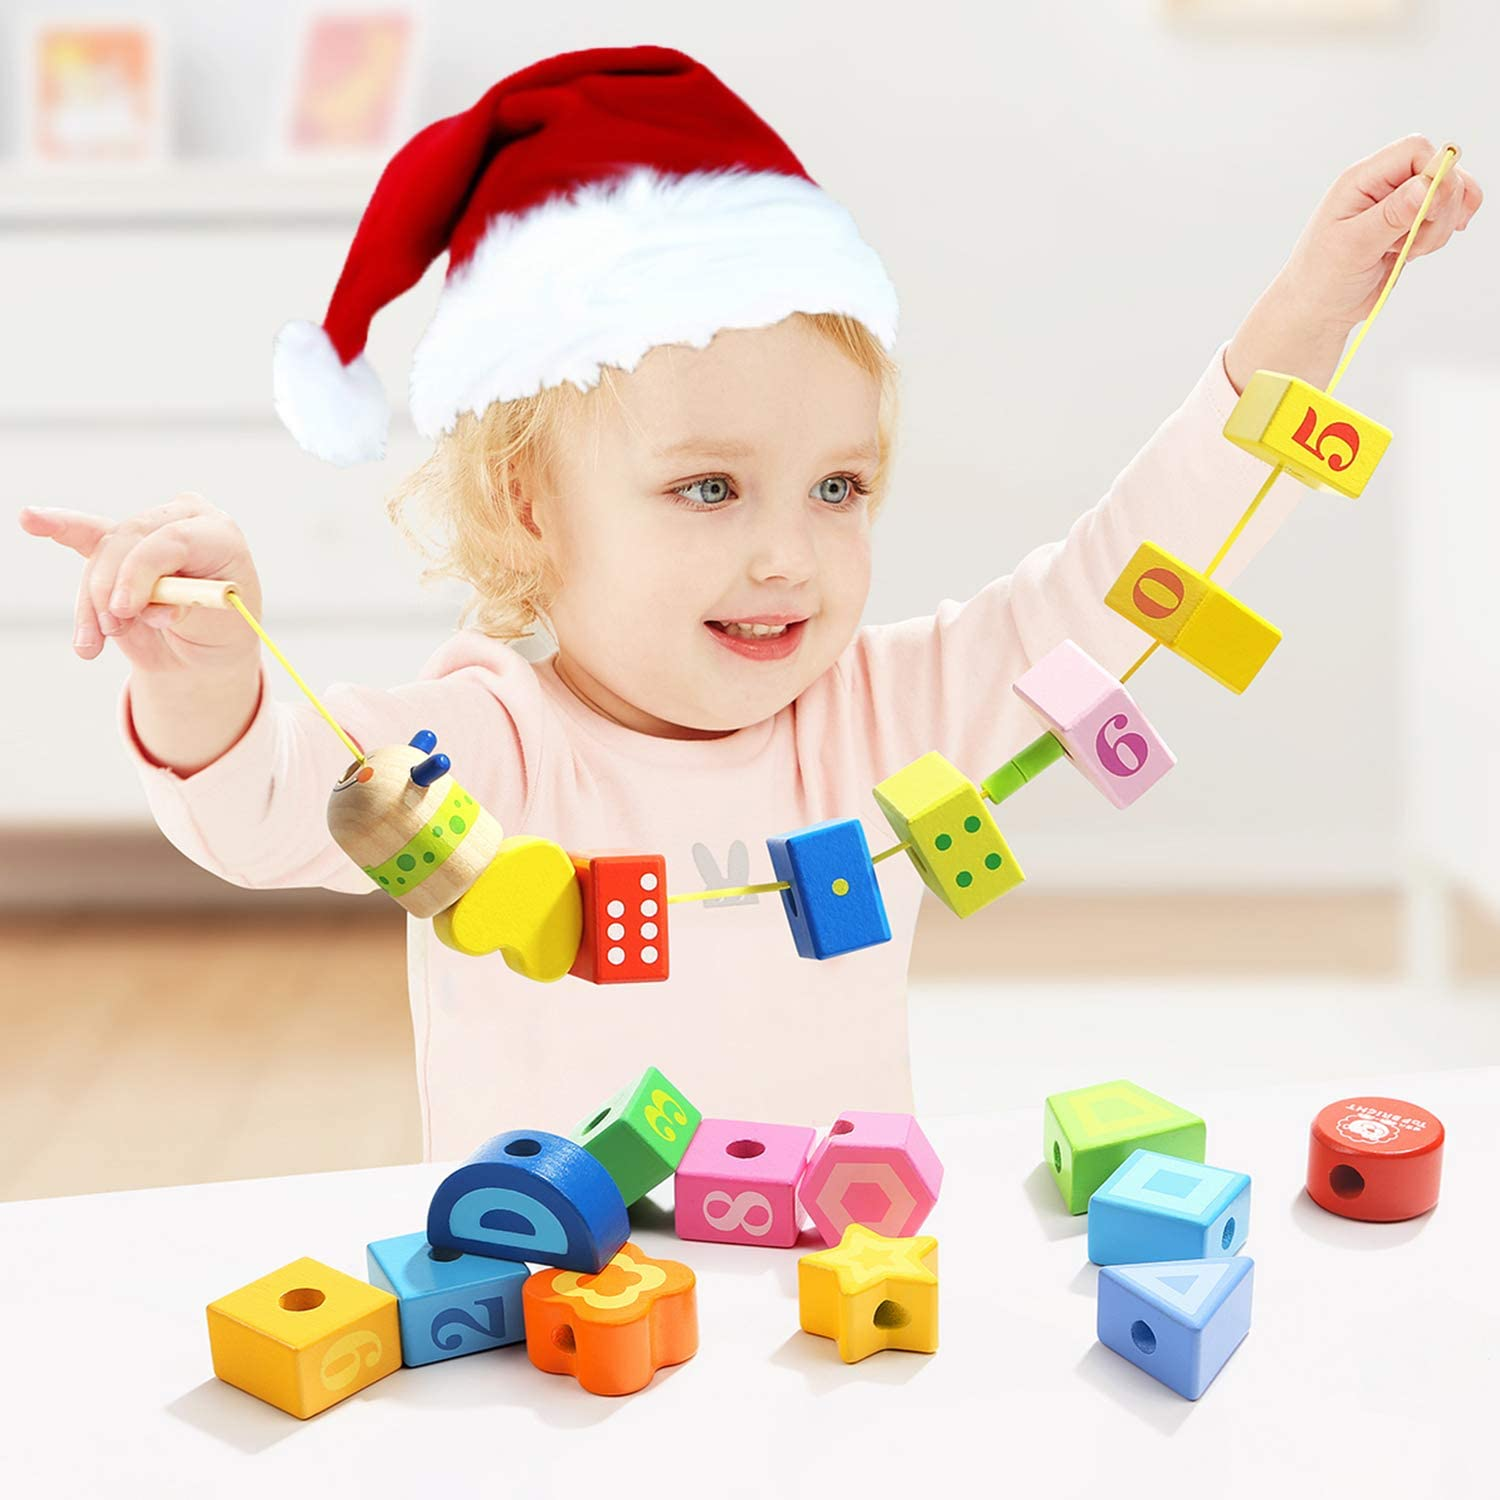 Wooden Preschool Educational Toys for Toddlers 18 Month TOP BRIGHT Lacing Beads Toys for 2 Year Old Girl and Boy Gifts